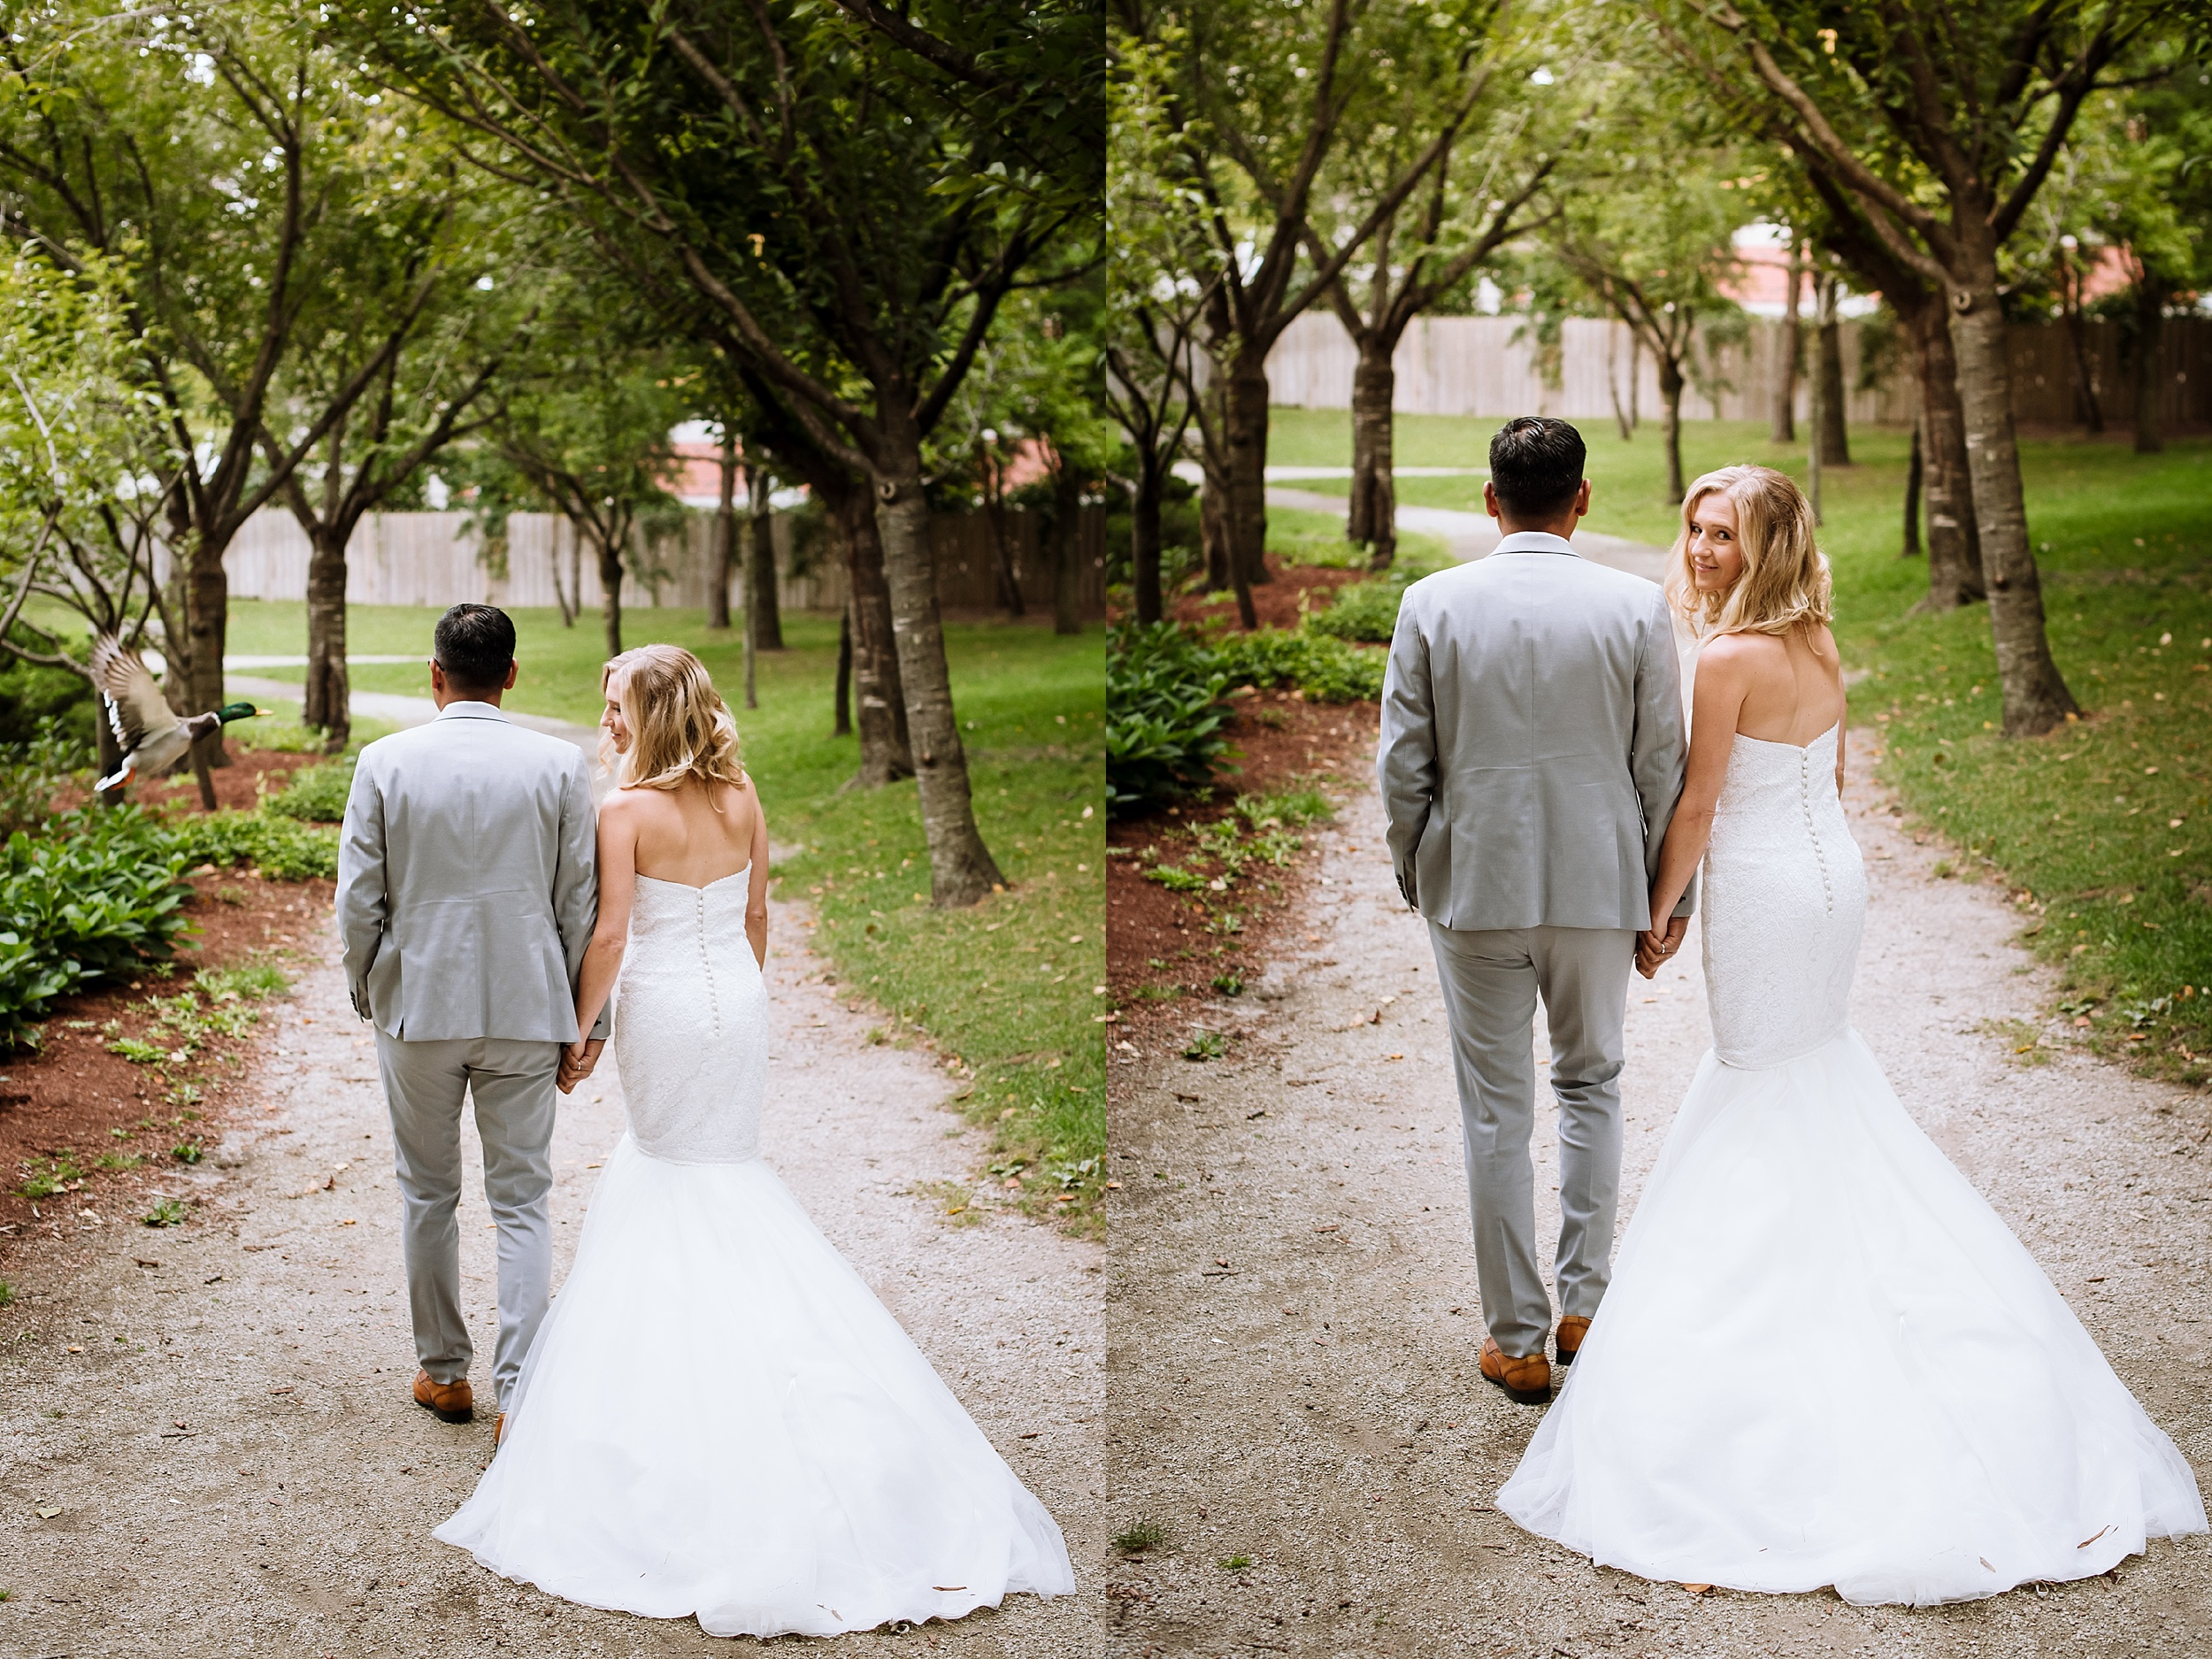 Kariya_Park_Wedding_Shoot_Toronto_Photographer_0031.jpg